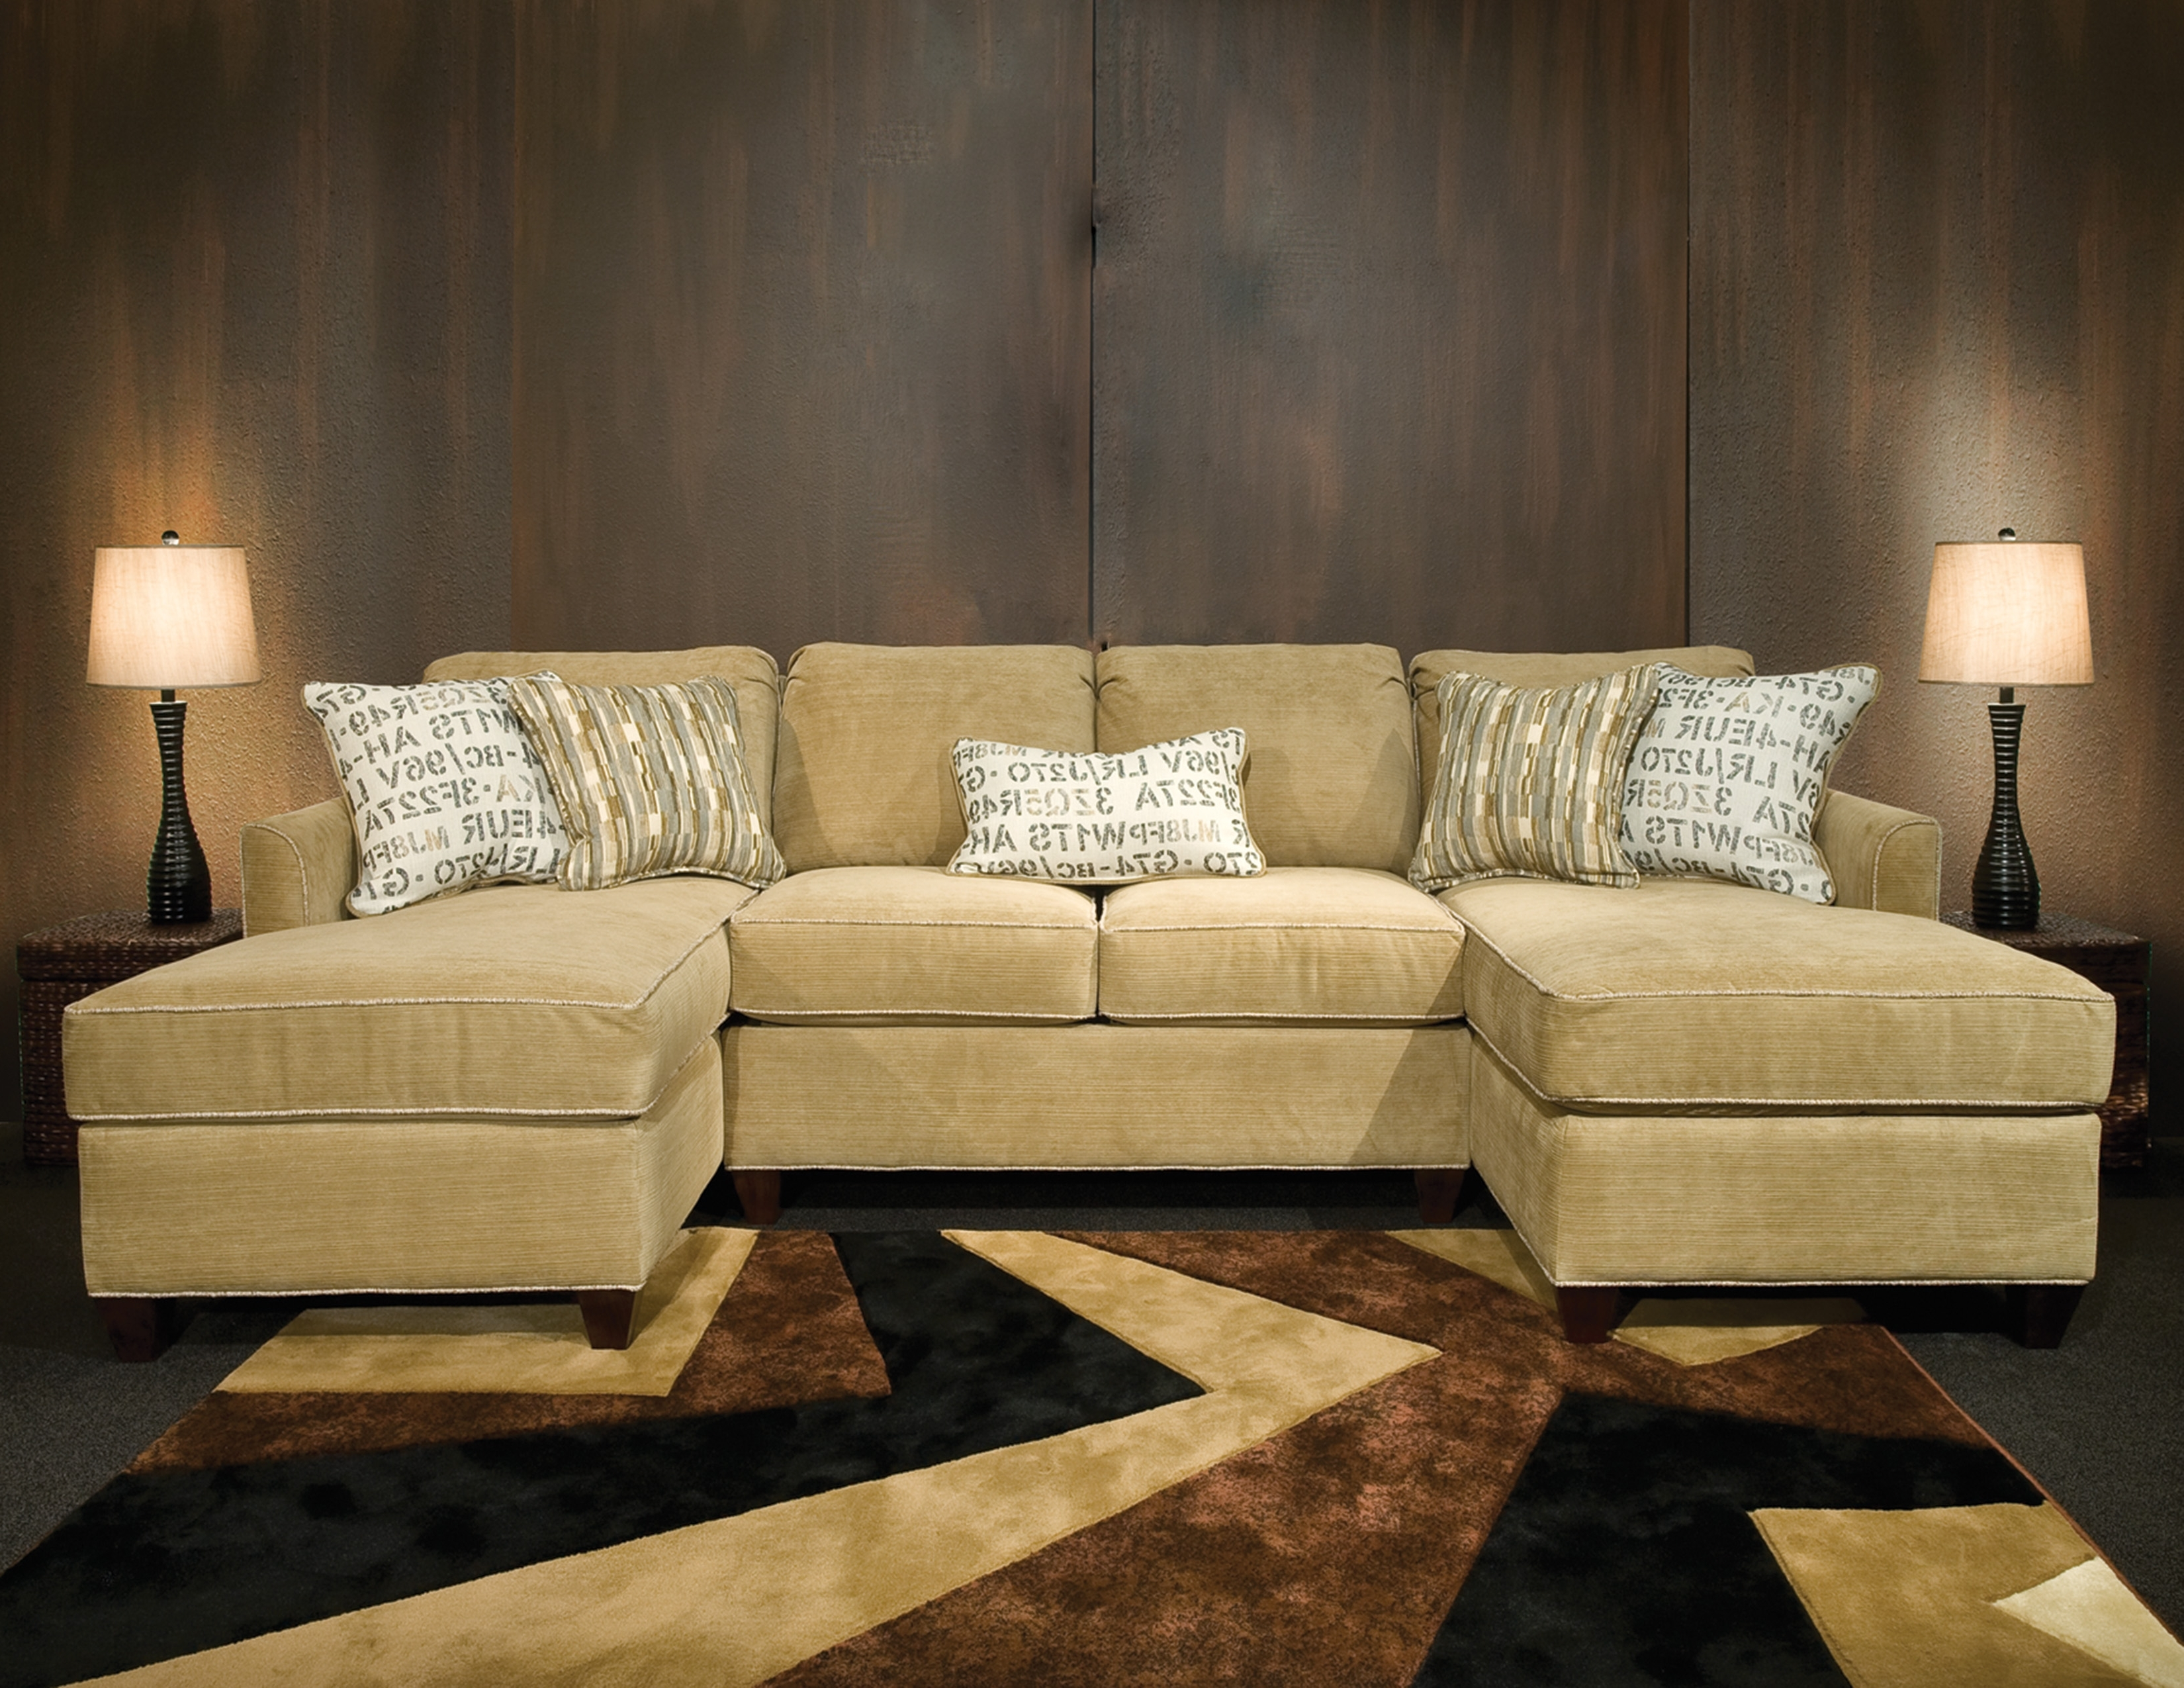 Well Known High End Sectional Sofas 73 With High End Sectional Sofas Within High End Sectional Sofas (View 15 of 15)